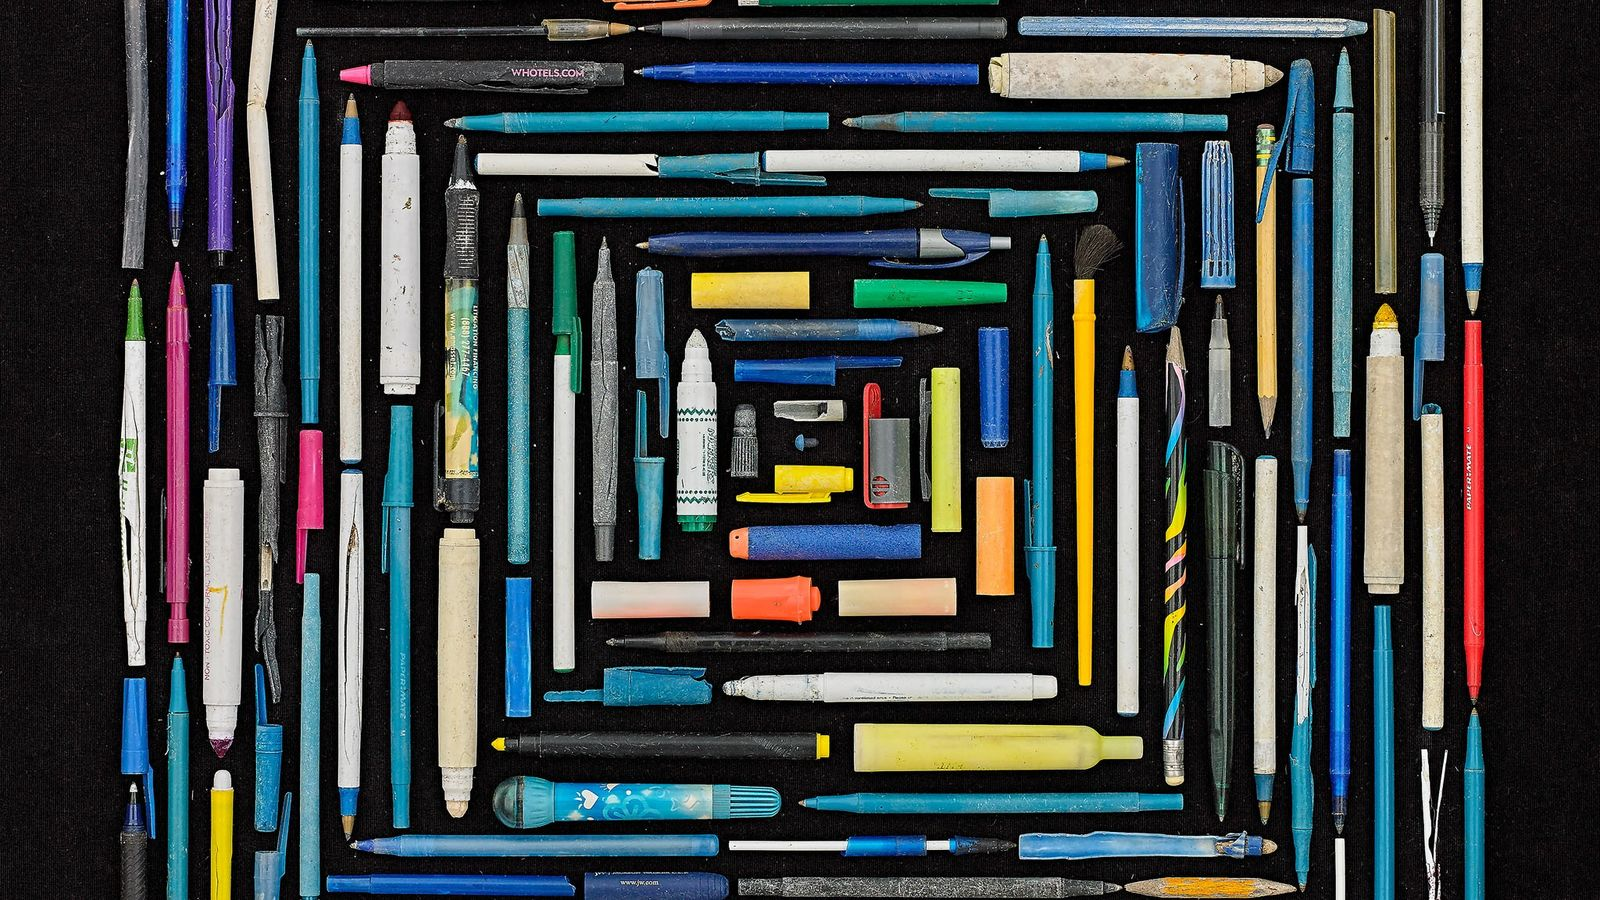 Rosenthal created an angular portrait out of pens, pencils, and markers. He finds the writing utensils ...